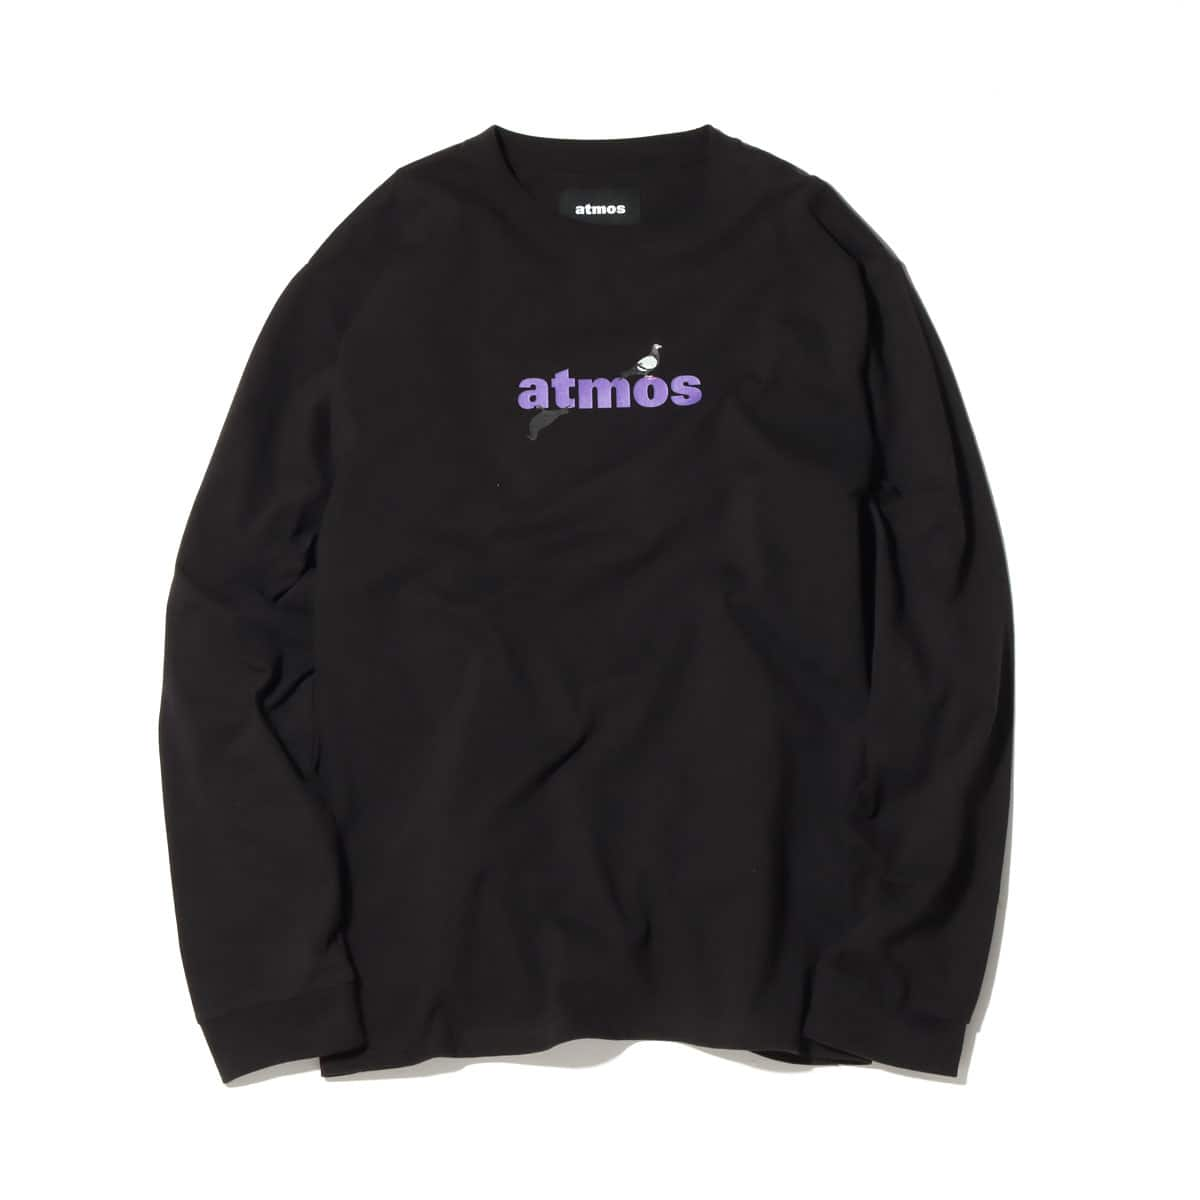 atmos STAPLE x ATMOS LS TEE BLACK 20FA-S_photo_large